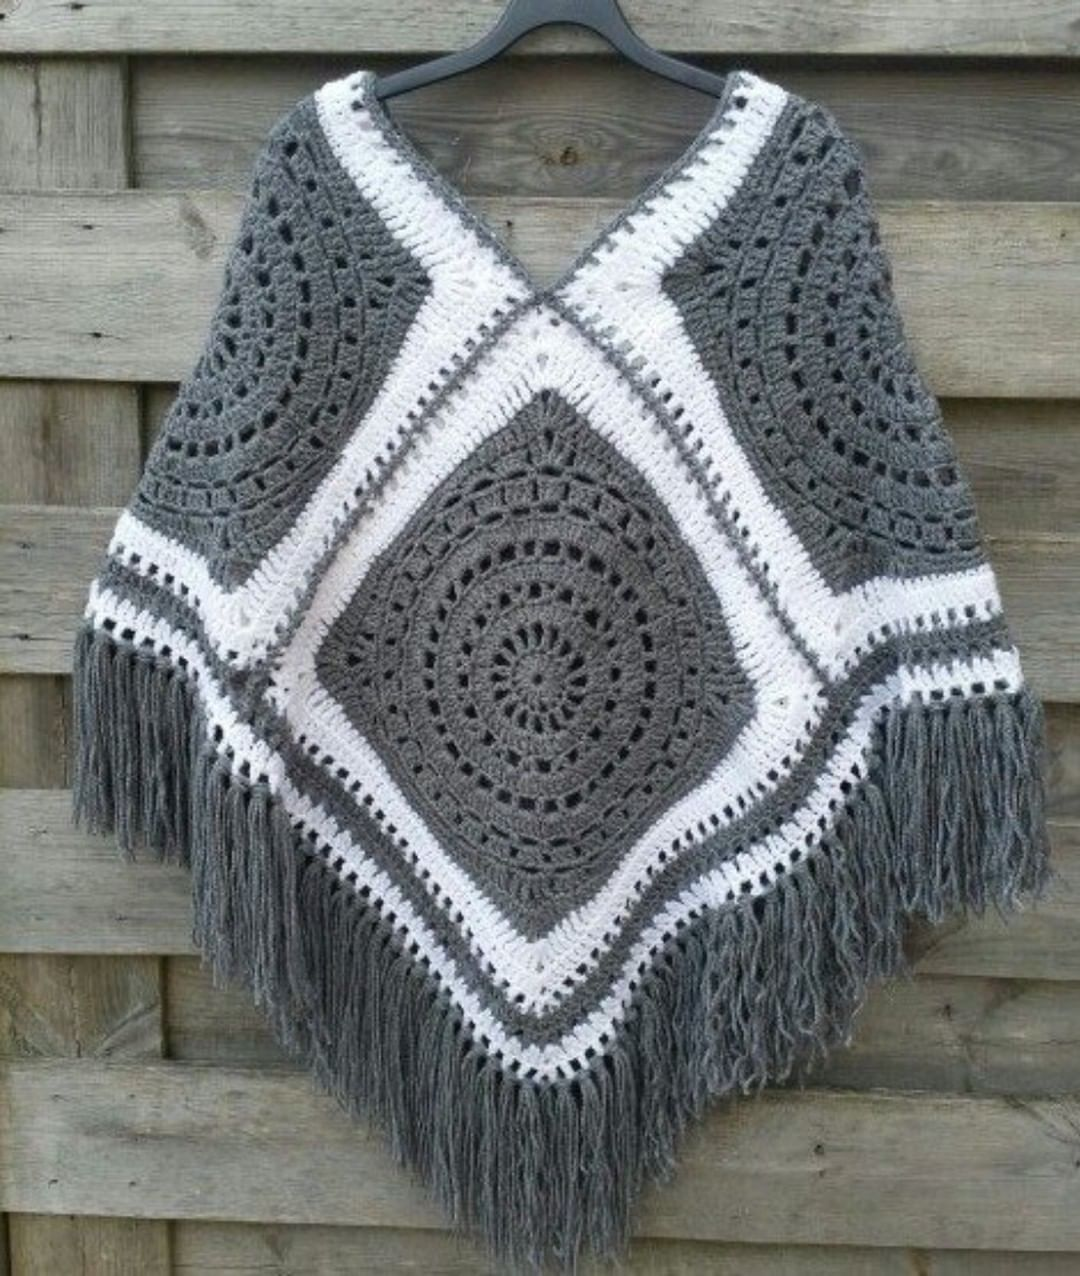 The Most Beautiful Crochet Poncho Patterns Crochet Crochet Patterns